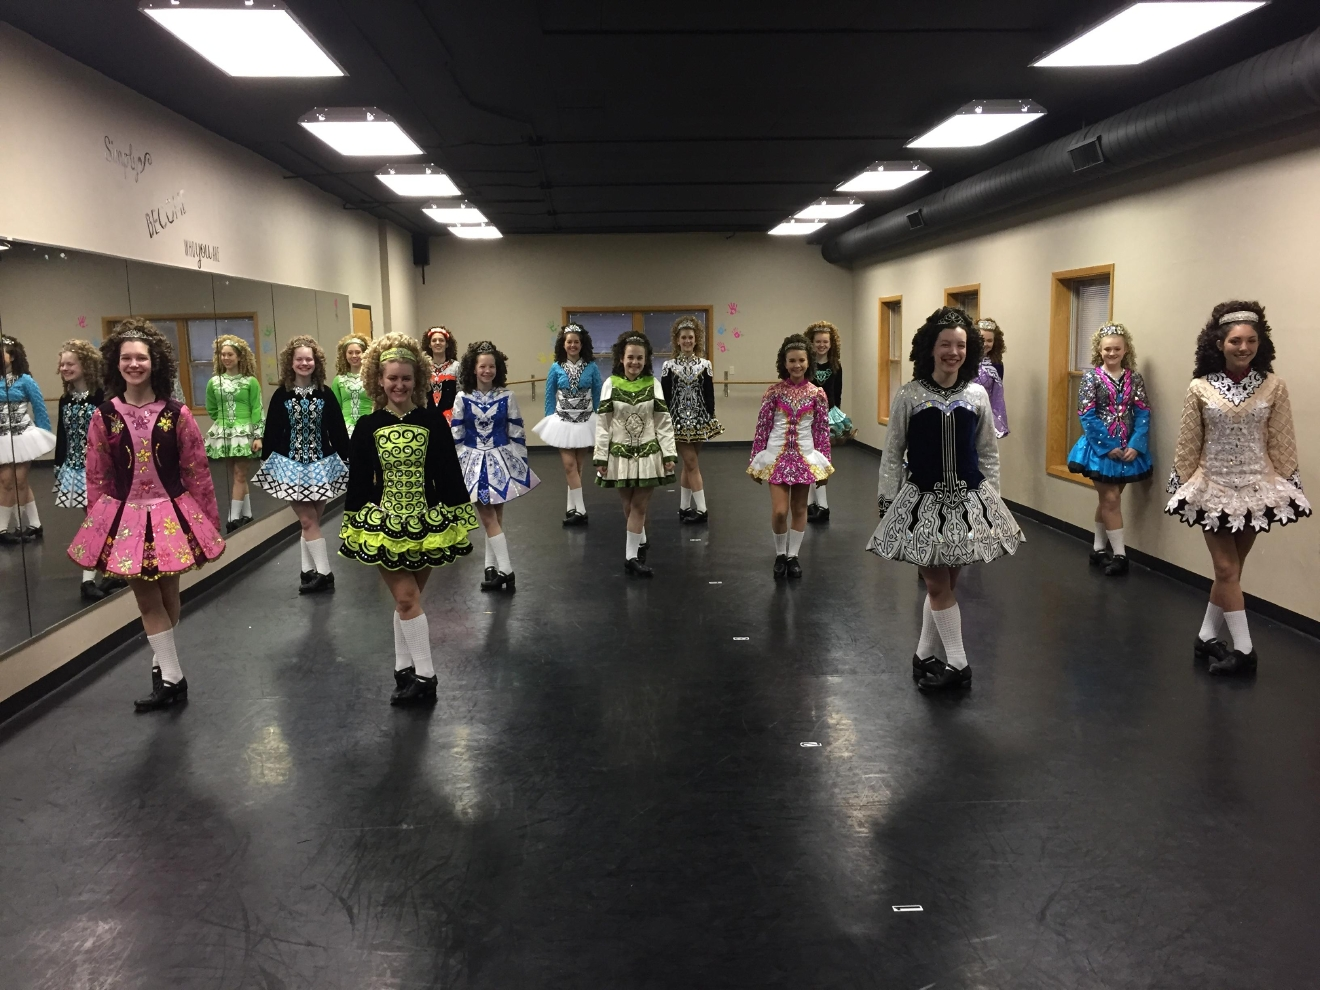 The Irish Heritage Dancers were Live Friday Morning Celebrating St. Patrick's day on Good Day Wisconsin. (March 17, 2017/WLUK)